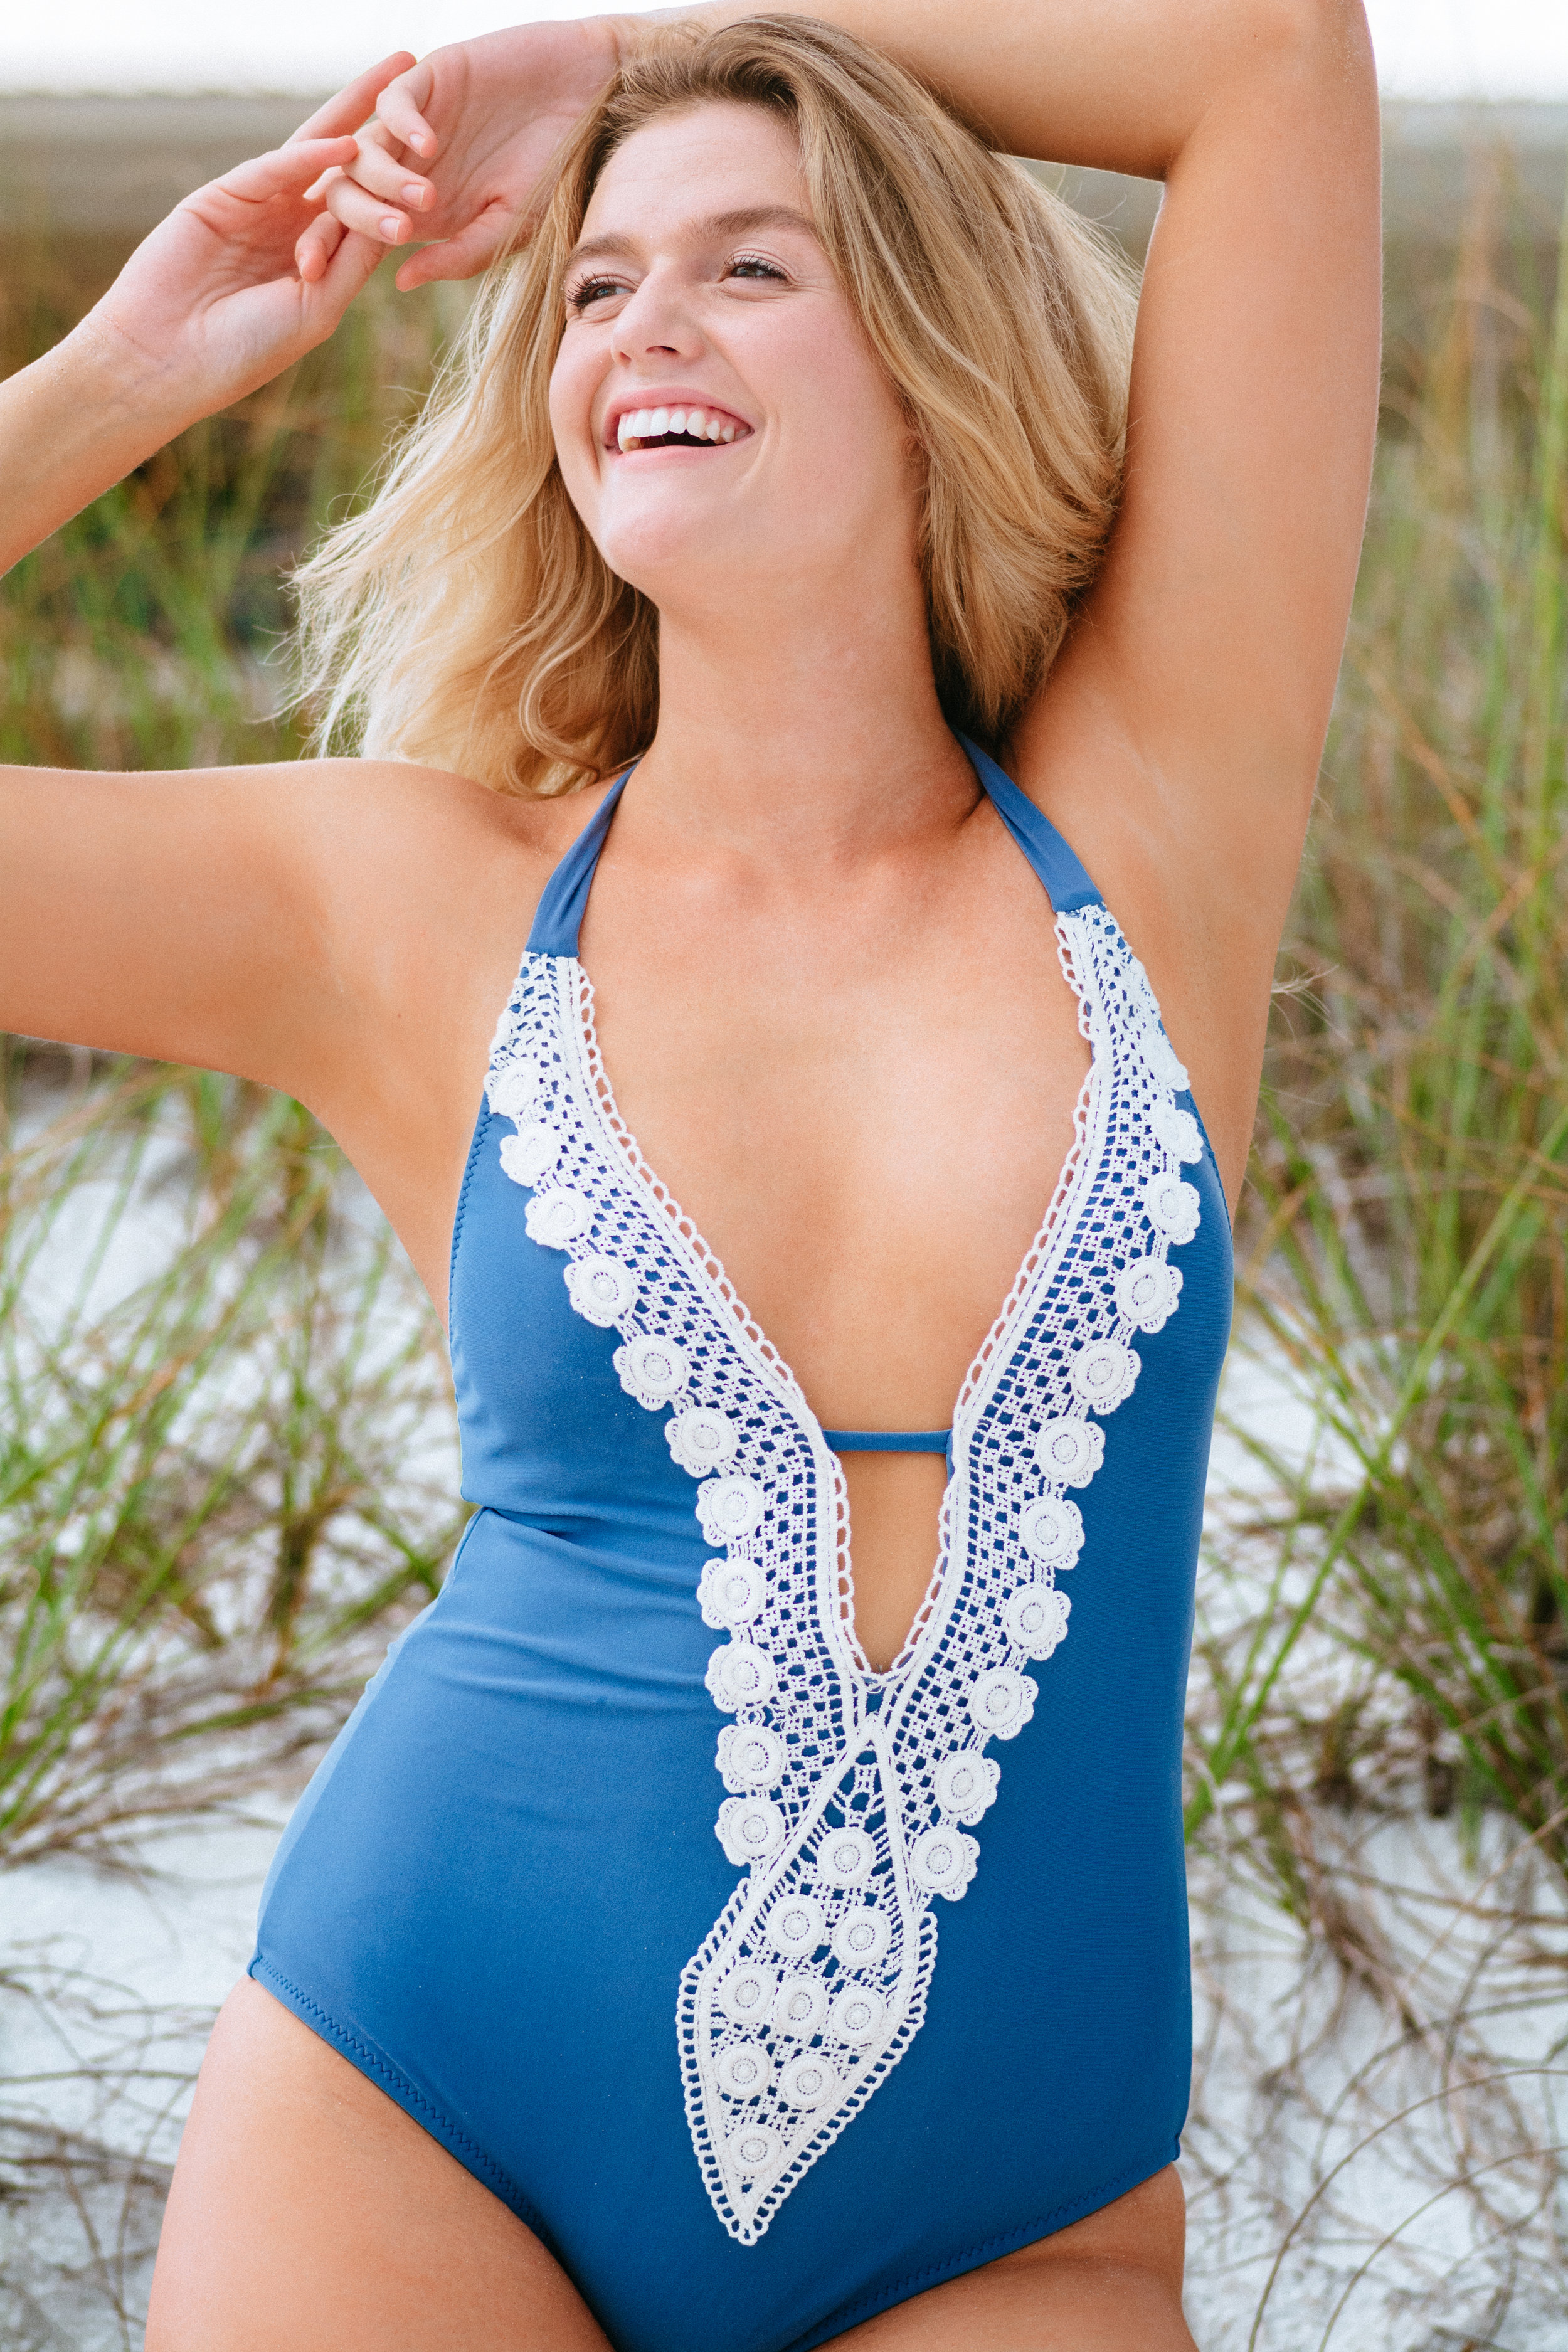 Dylan-Carney-Photography-Fashion-Lifestyle-Photography-Destin-Swim-Beach-Elizabeth-Braley-4.jpg